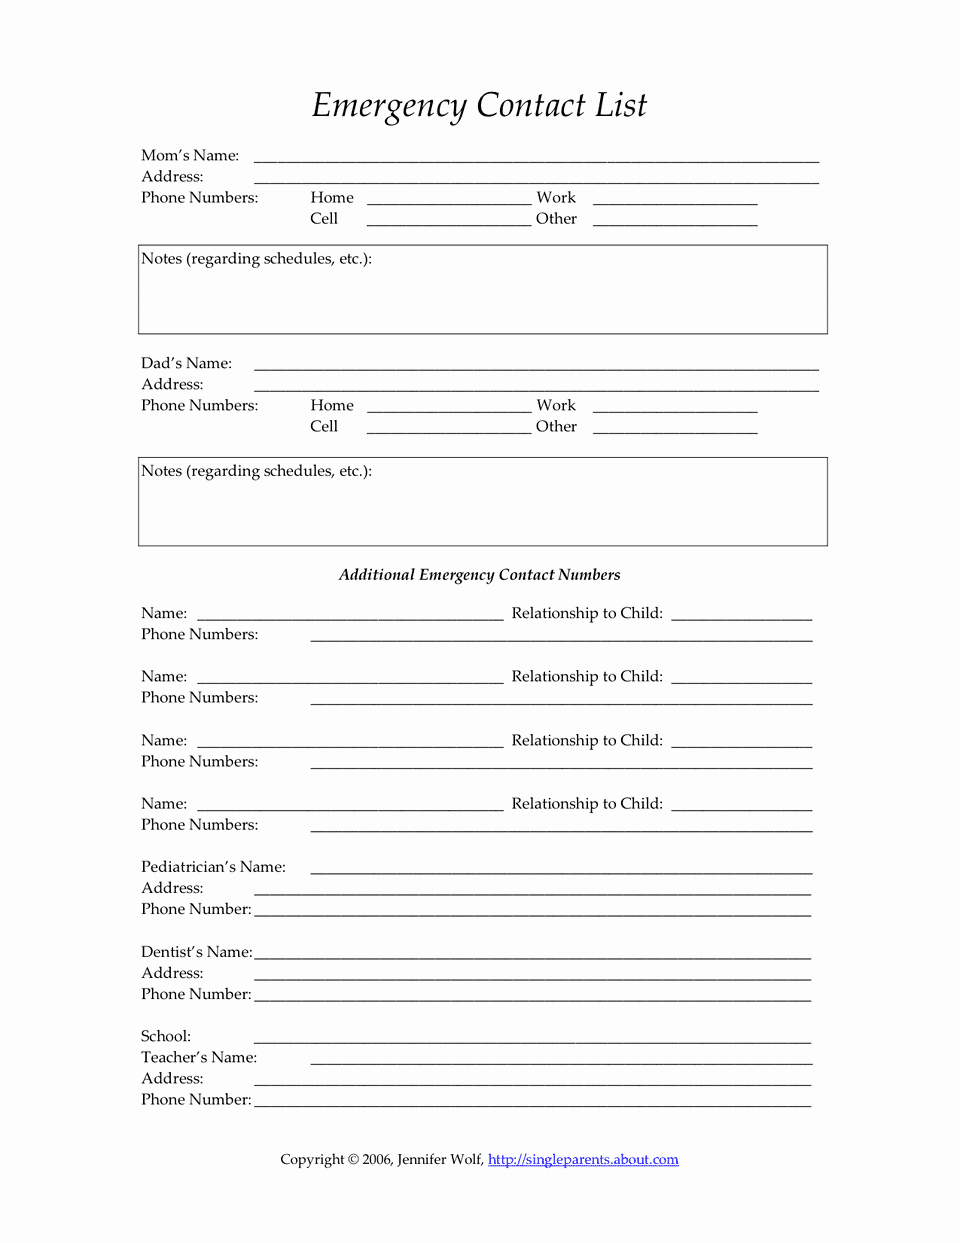 Emergency Contact List for Babysitters Best Of form Templates Child Care Emergency Contact form Child